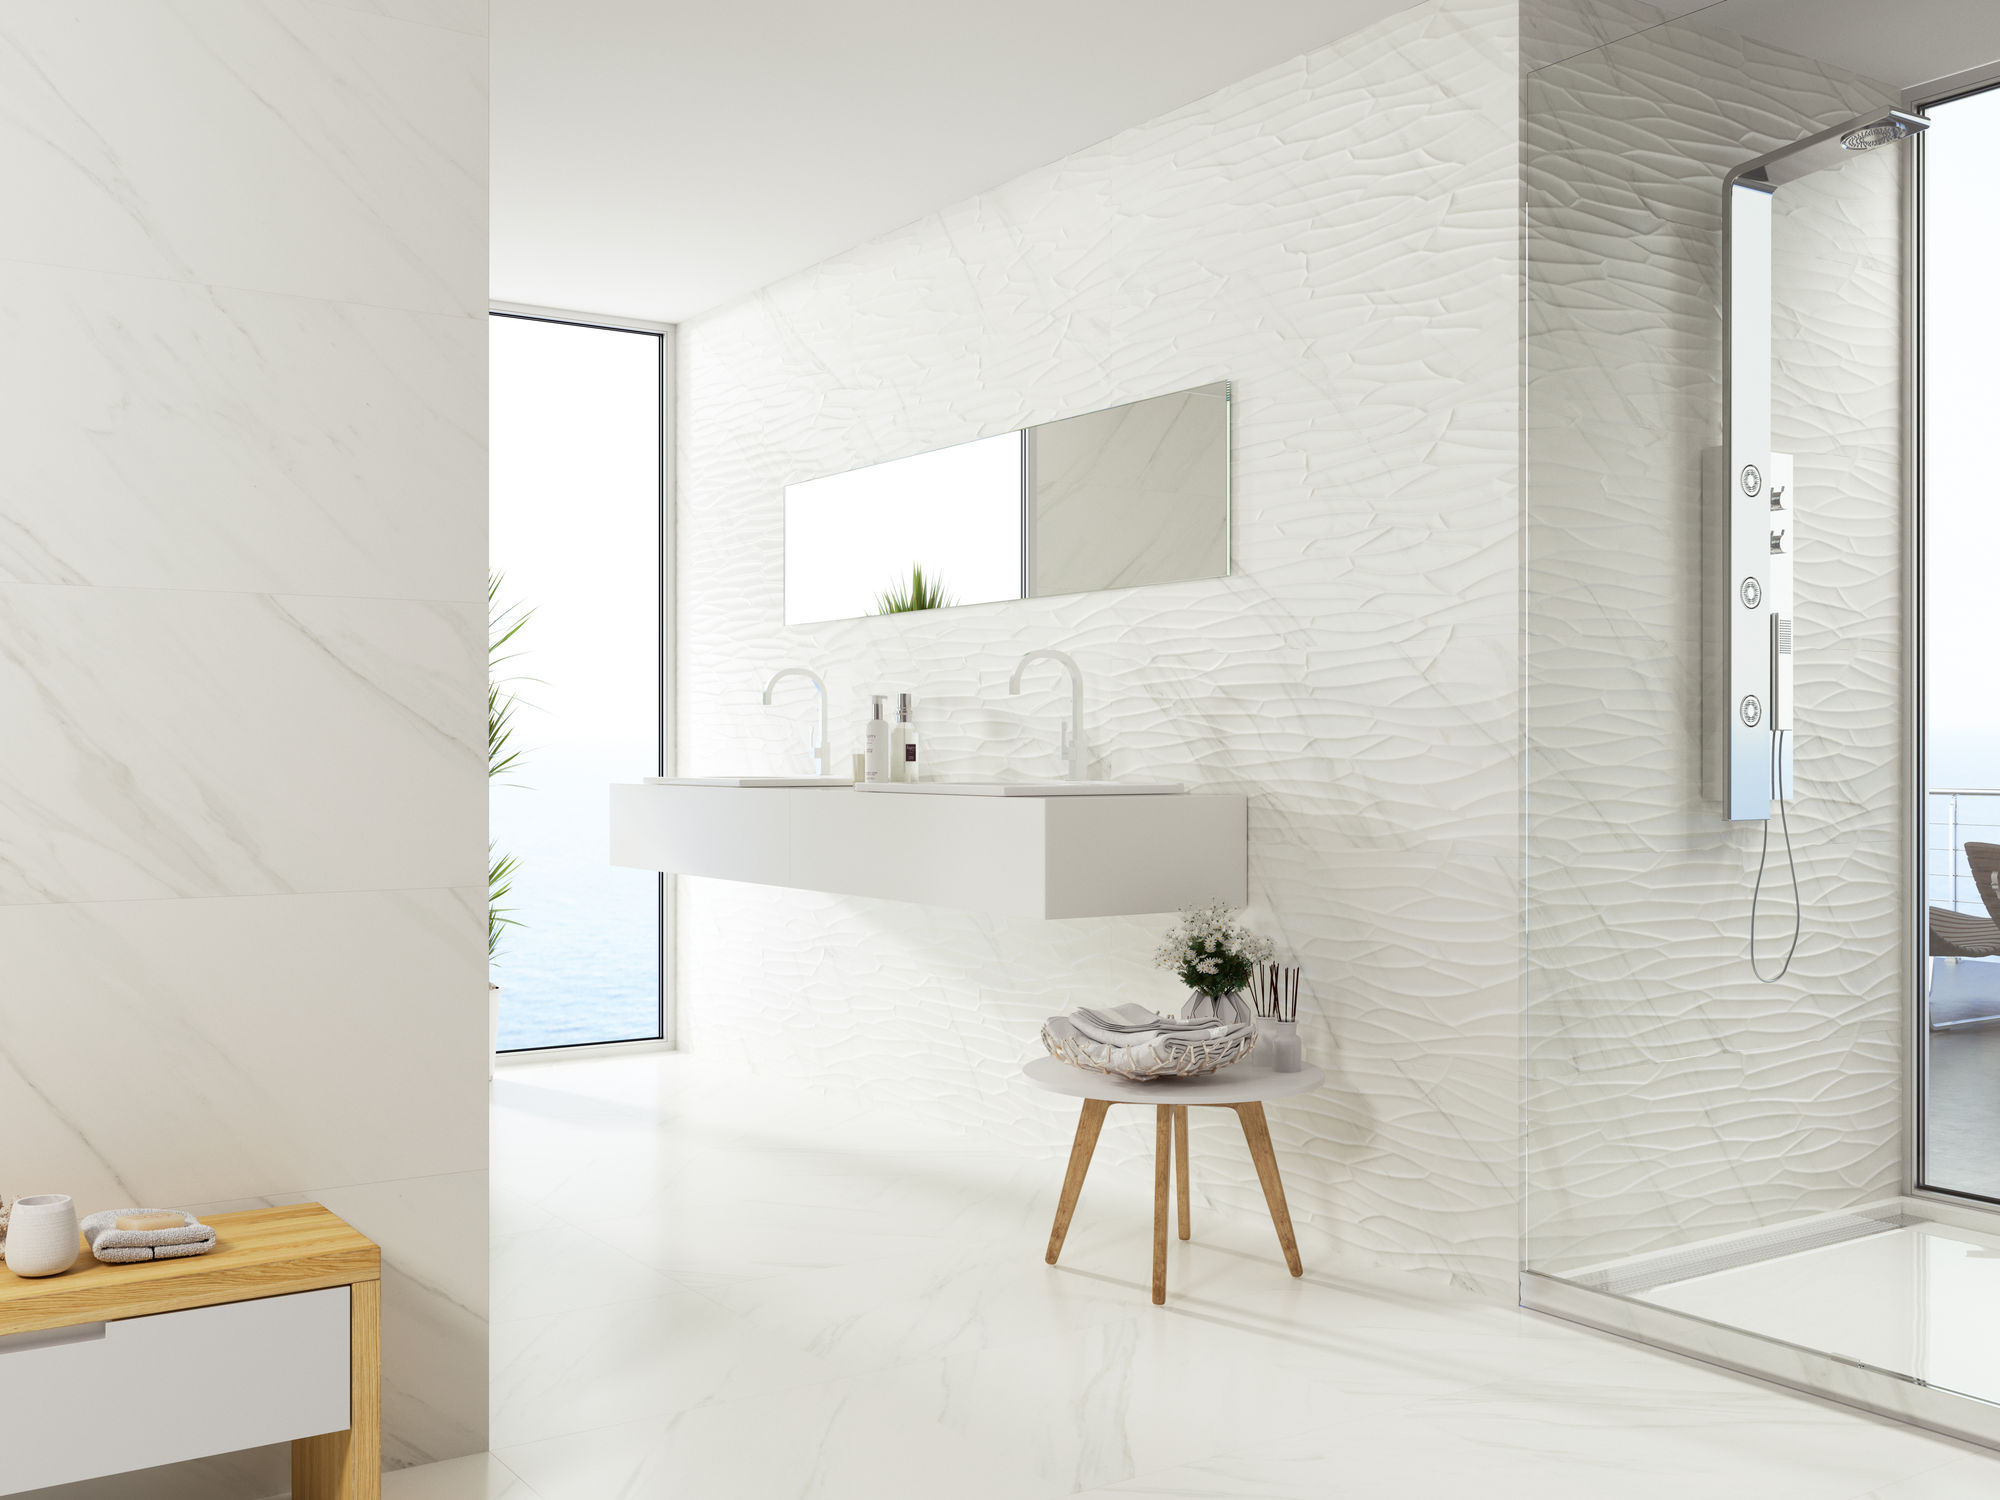 Cream Bathroom Walls and Floor with Large View Windows